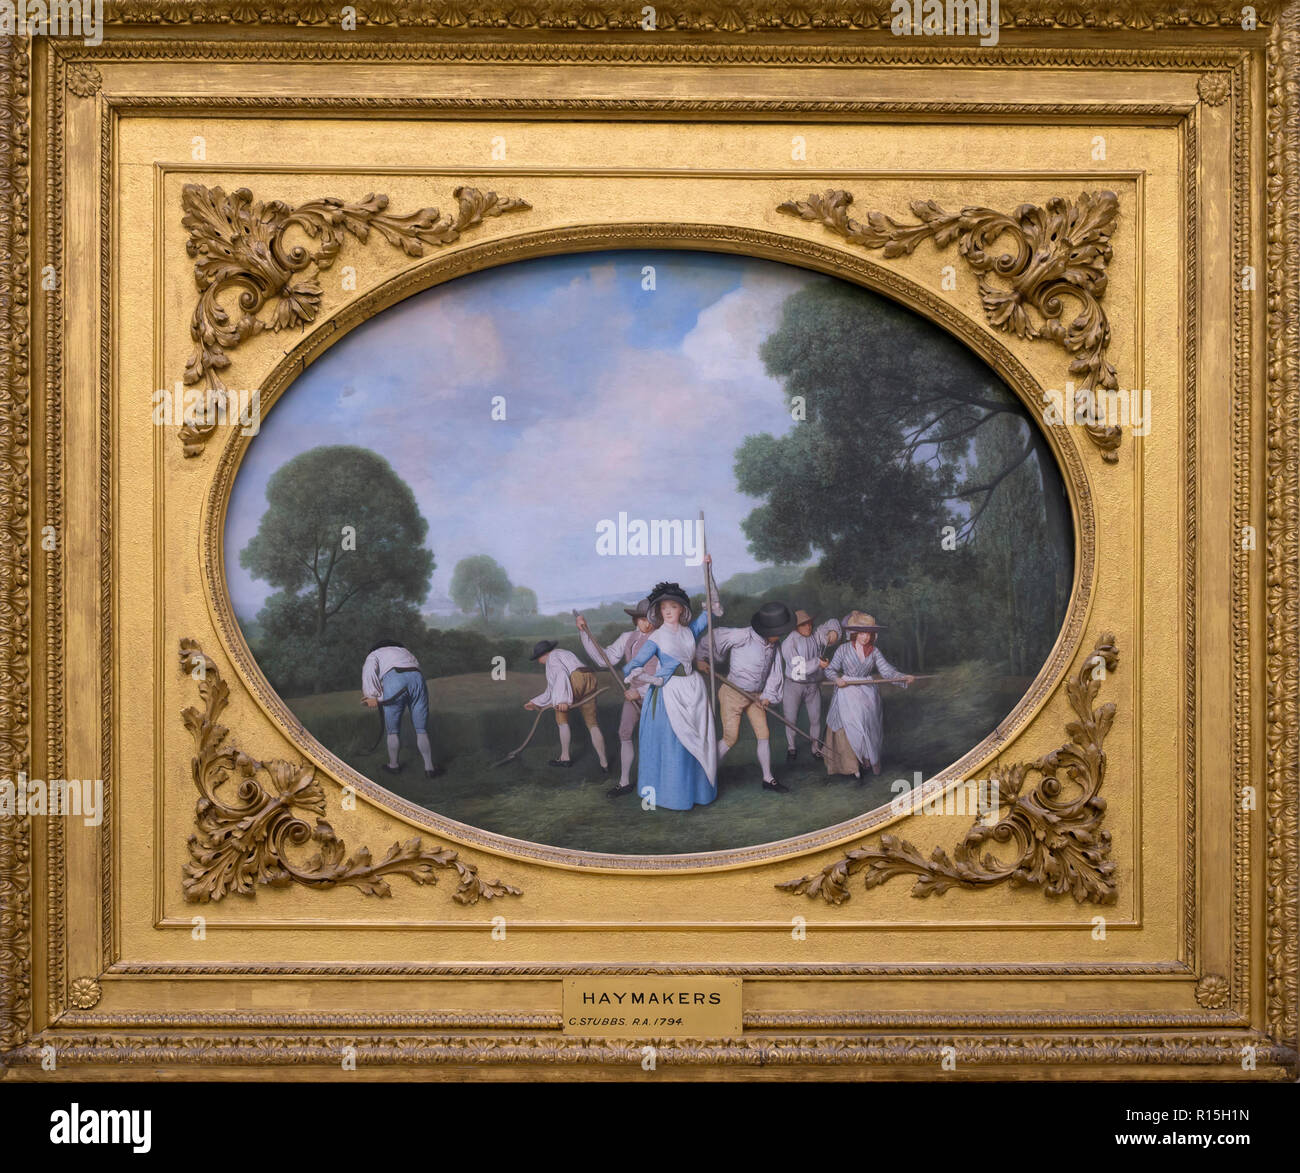 Haymakers, George Stubbs, 1794, Lady Lever Art Gallery, Port Sunlight, Liverpool, England, UK, Europe - Stock Image